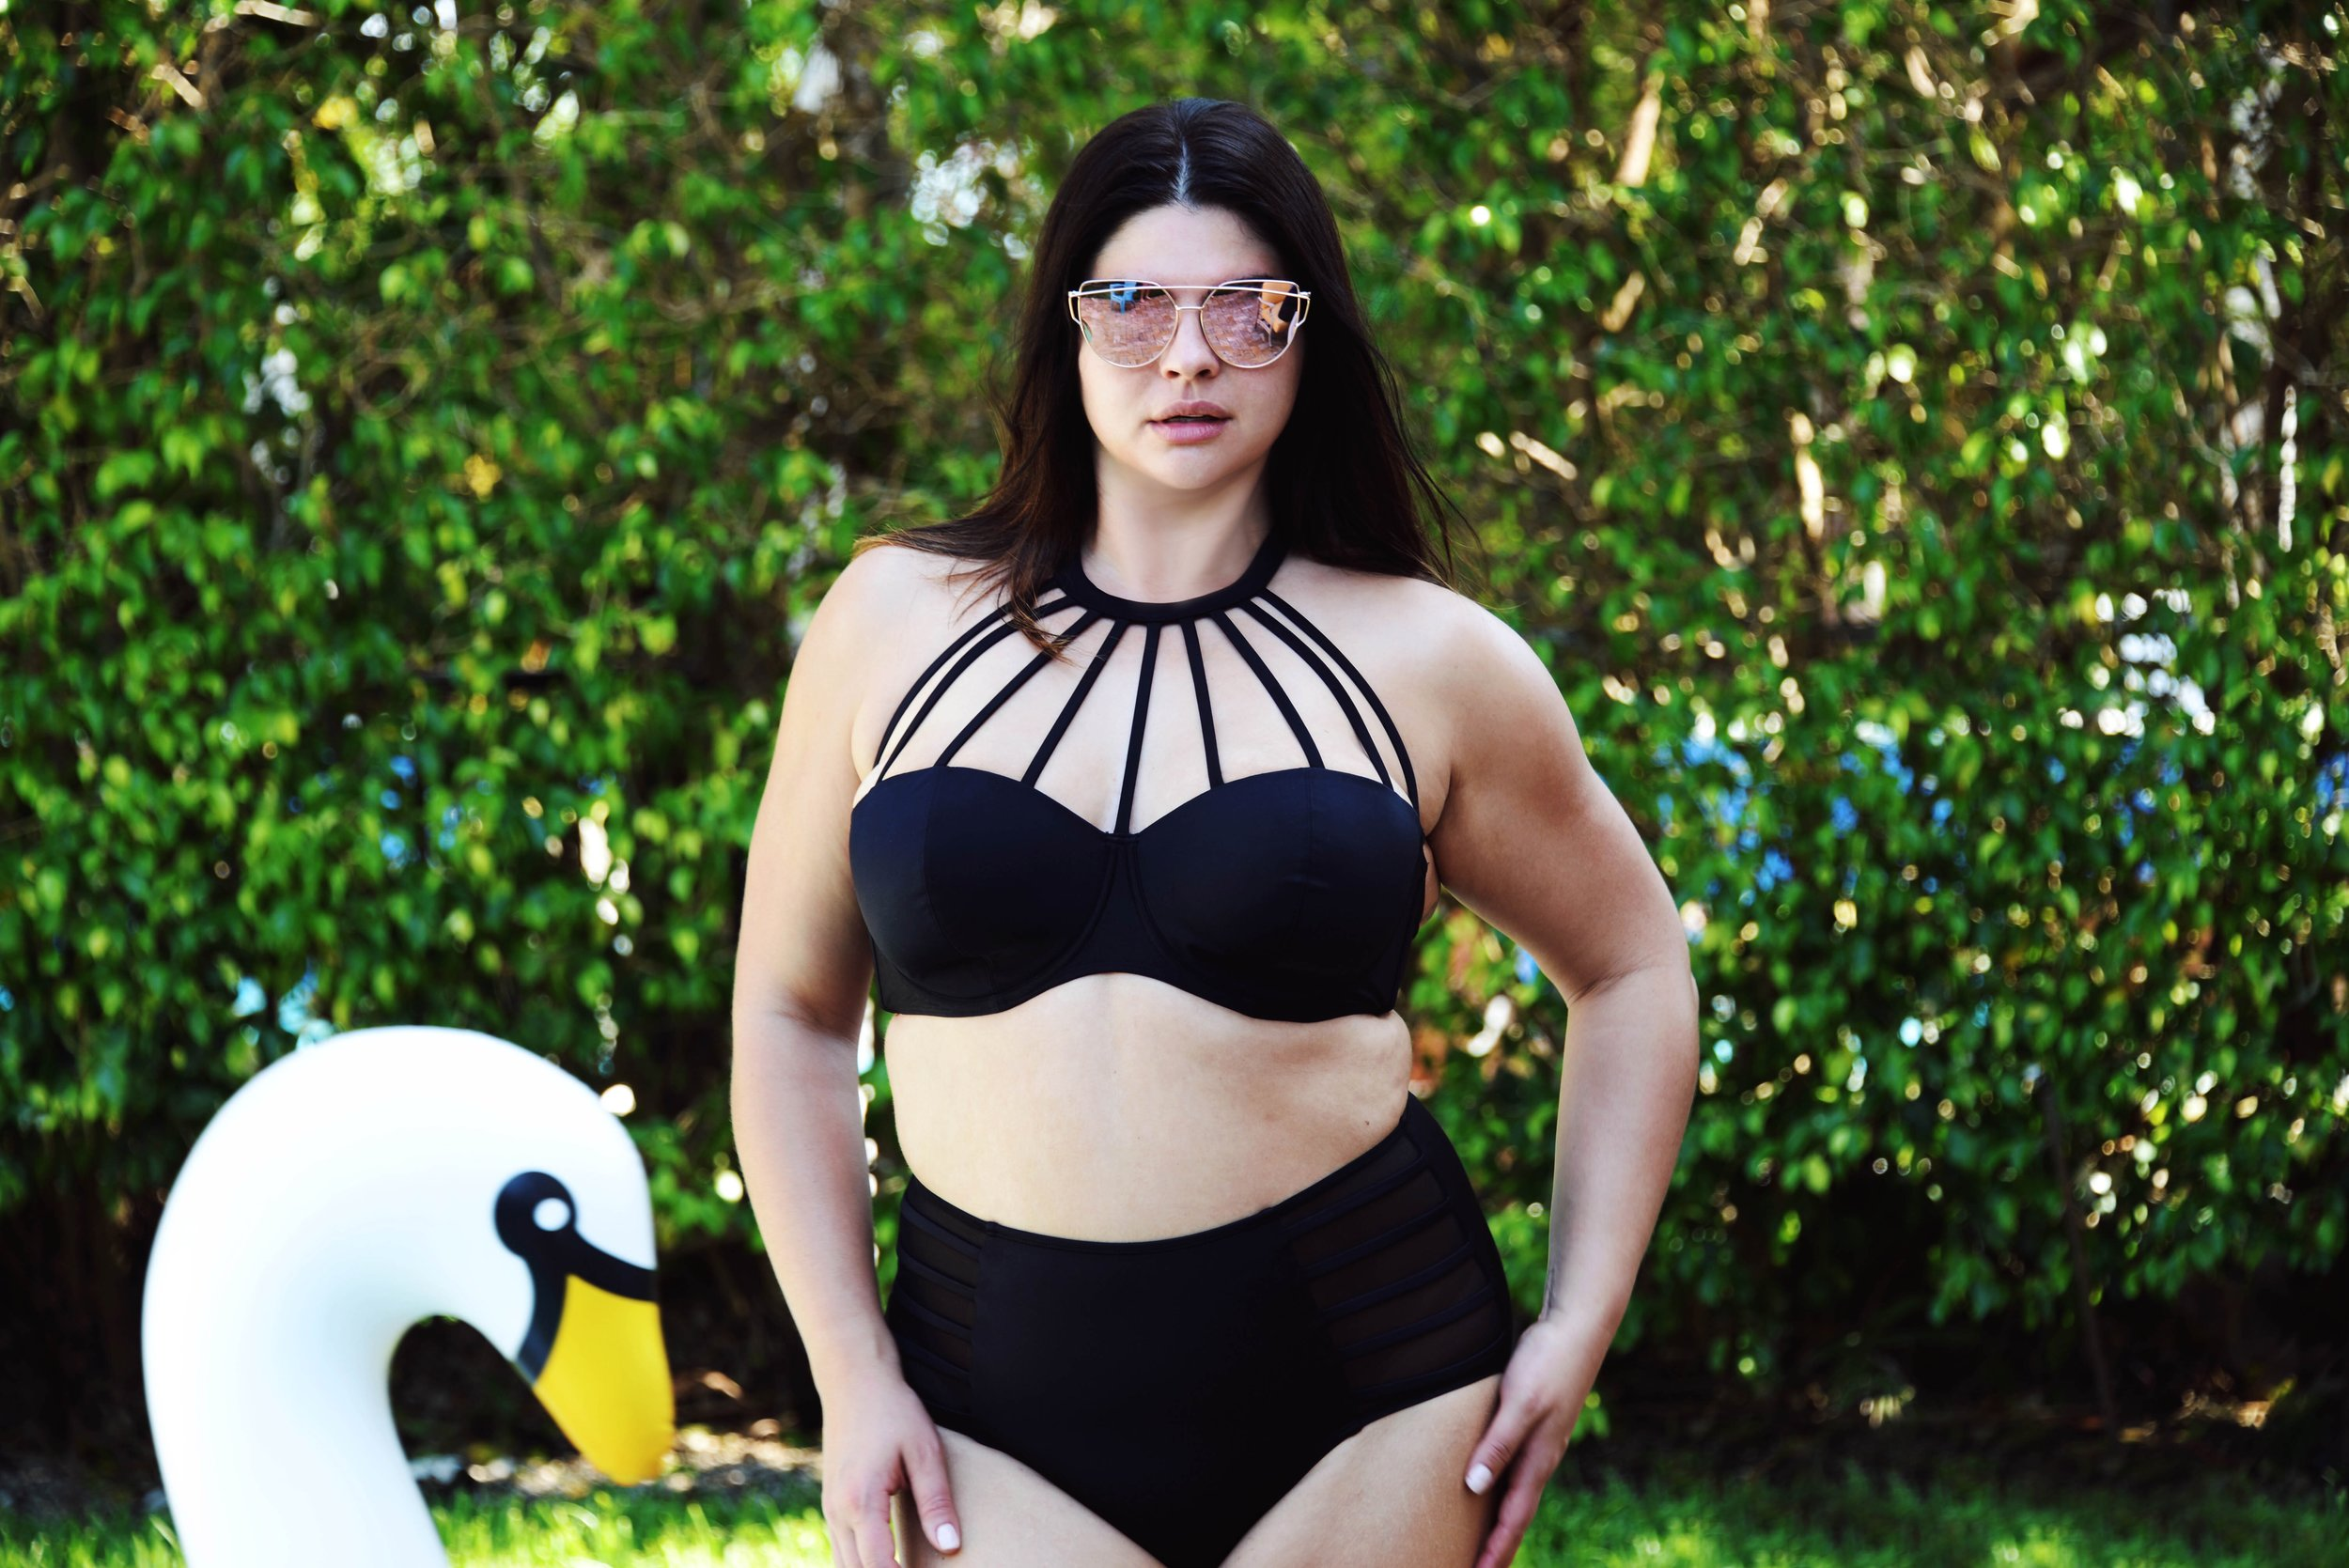 Swimsuit by Adore Me, Photo by  Will Shreve